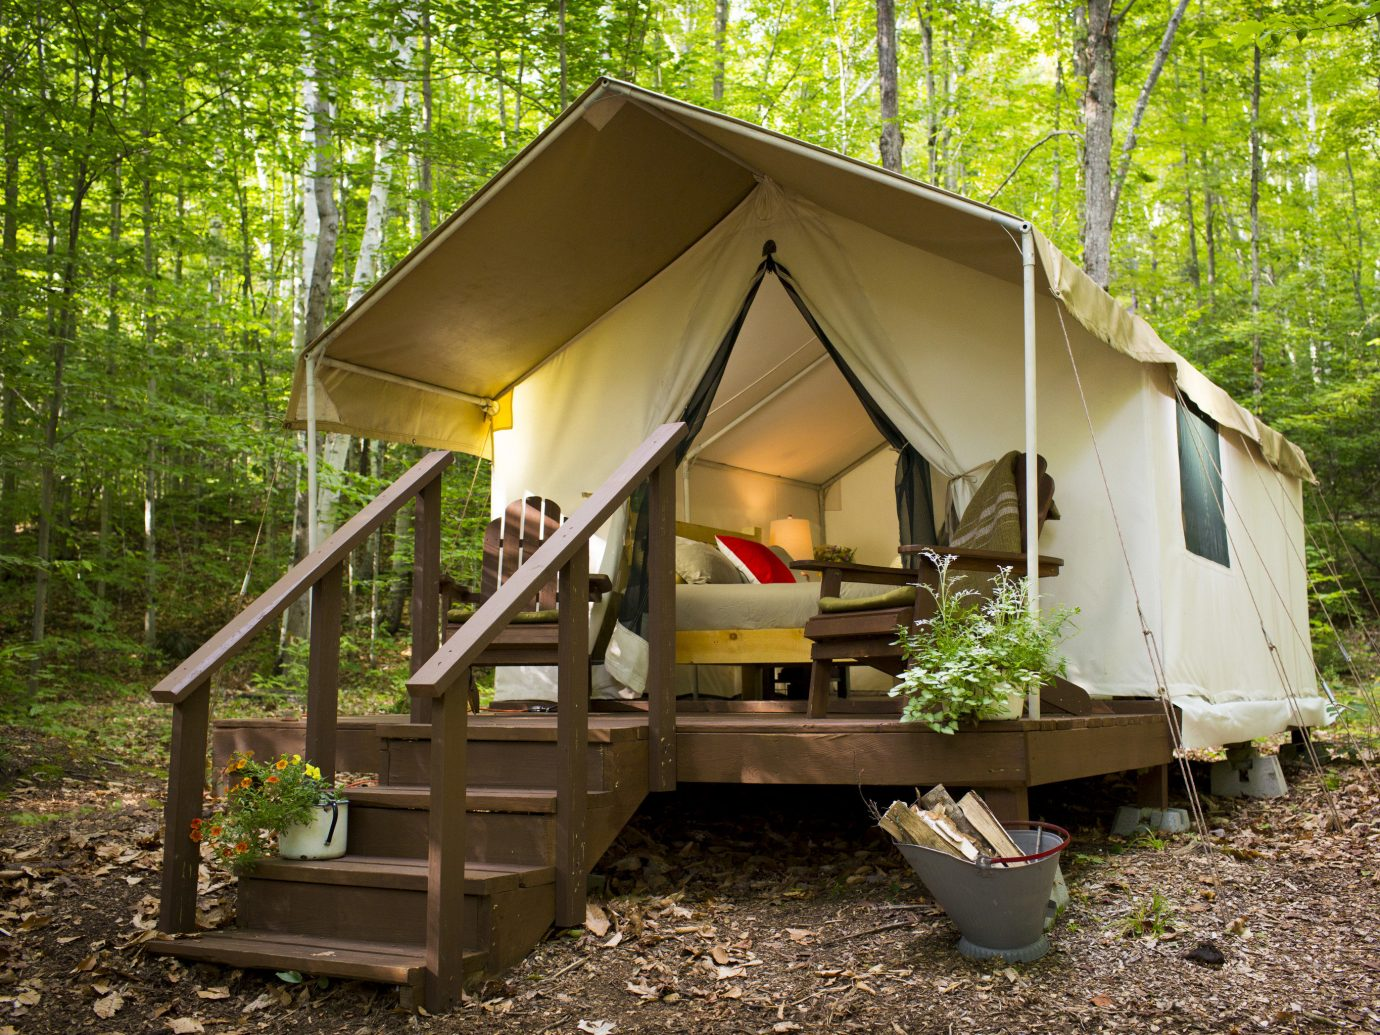 Glamping Outdoors + Adventure Weekend Getaways tree outdoor truck ground building tent house camping cottage shack home shed hut log cabin woodland wood porch area trunk trailer trash